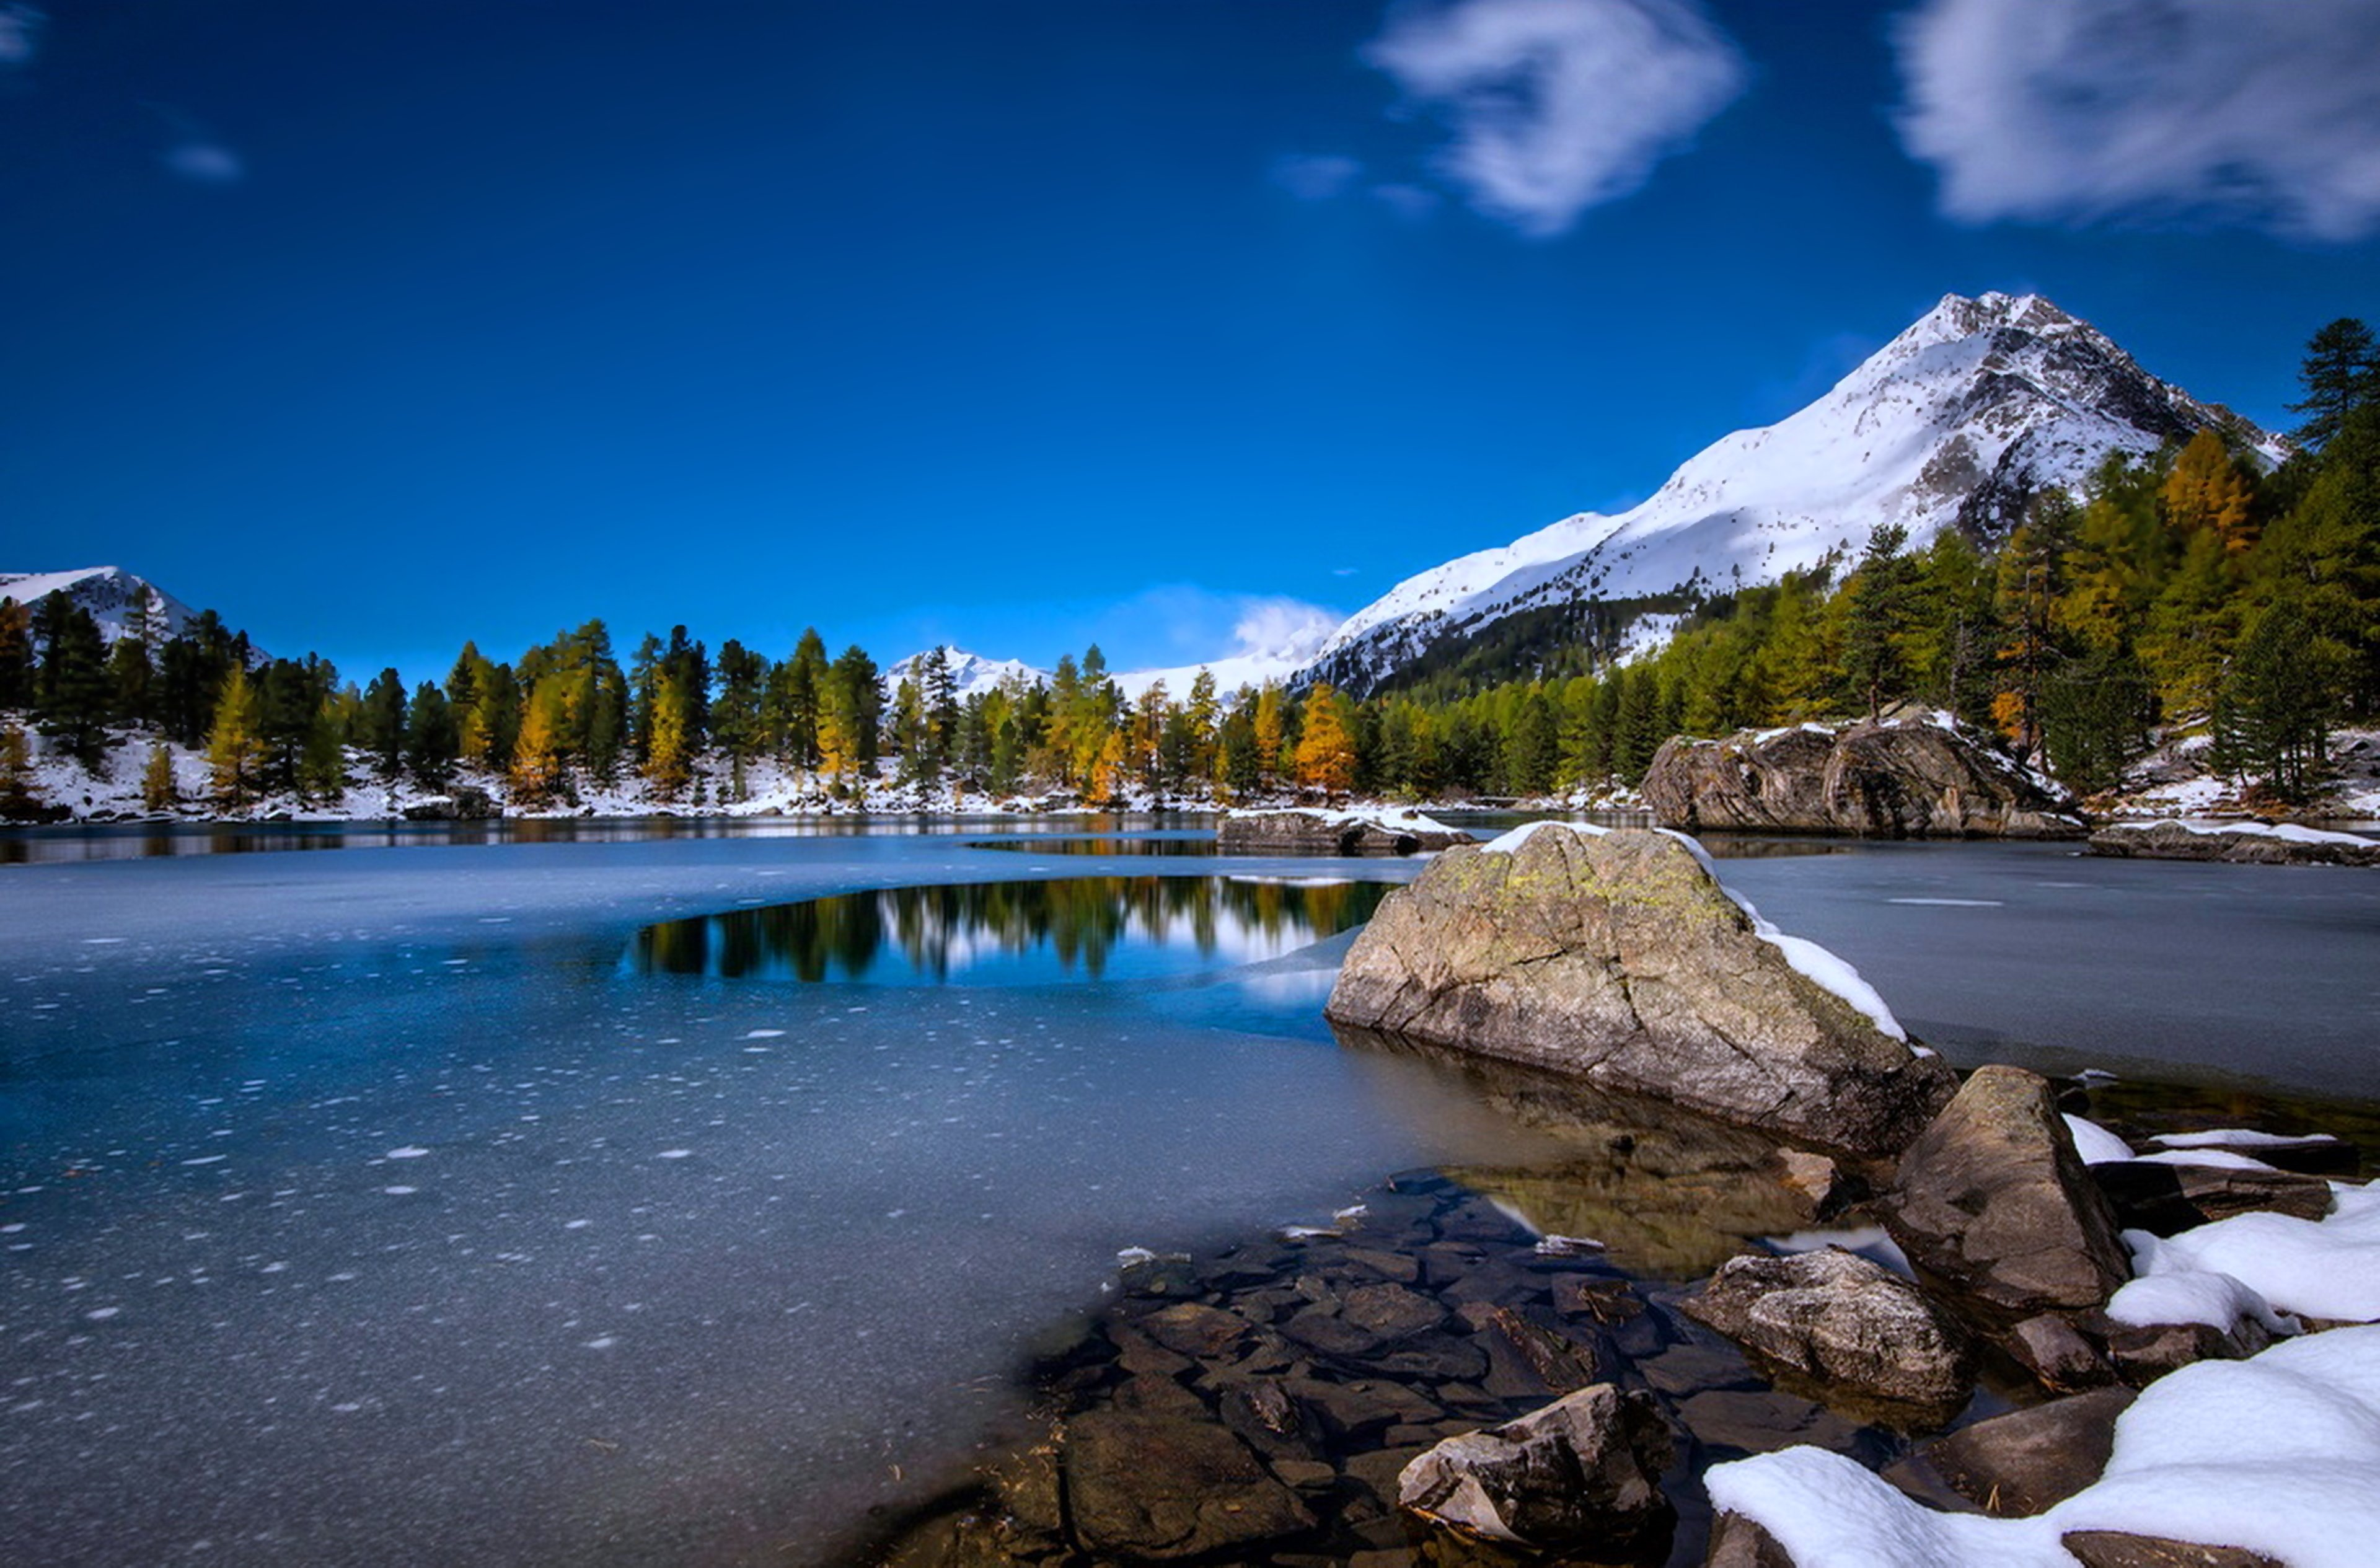 Snow Lakes Rocks Stones Trees Forest Mountains Landscapes